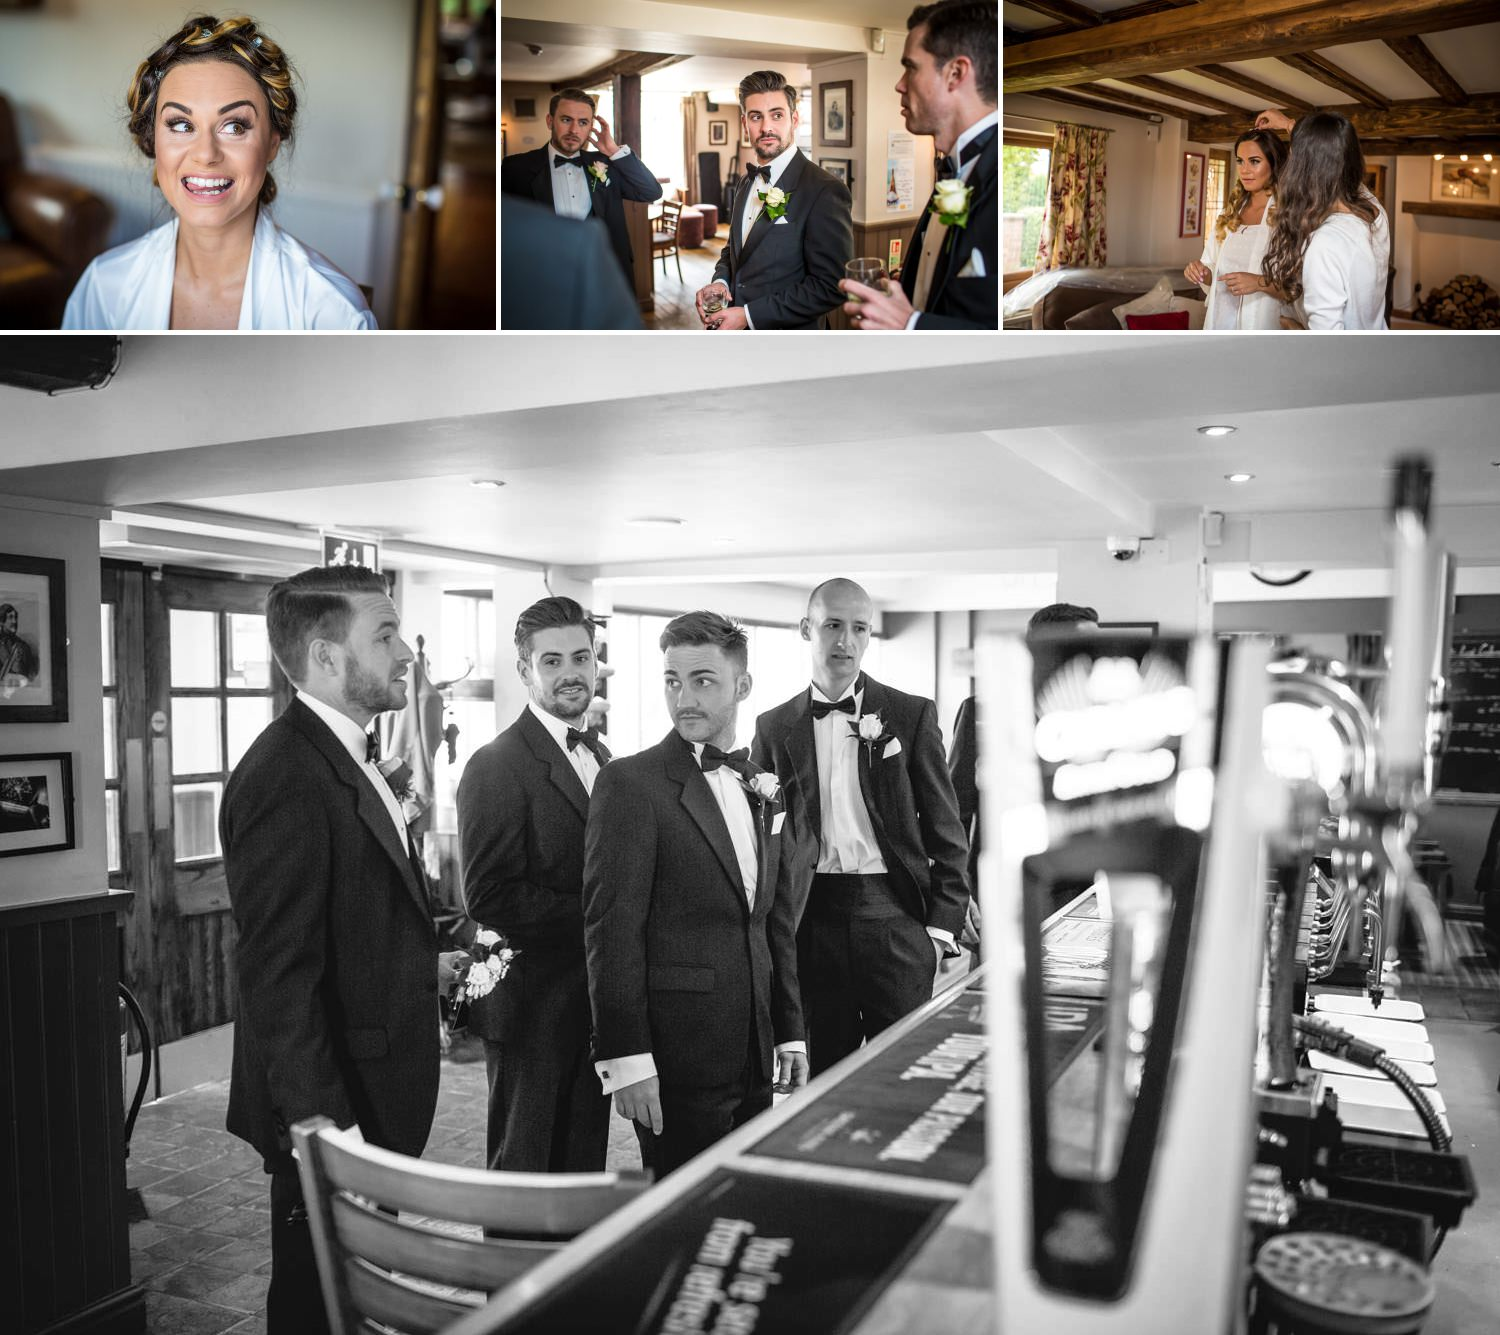 Wedding Photography bride and groom getting ready in Tern Hill Hall Shropshire